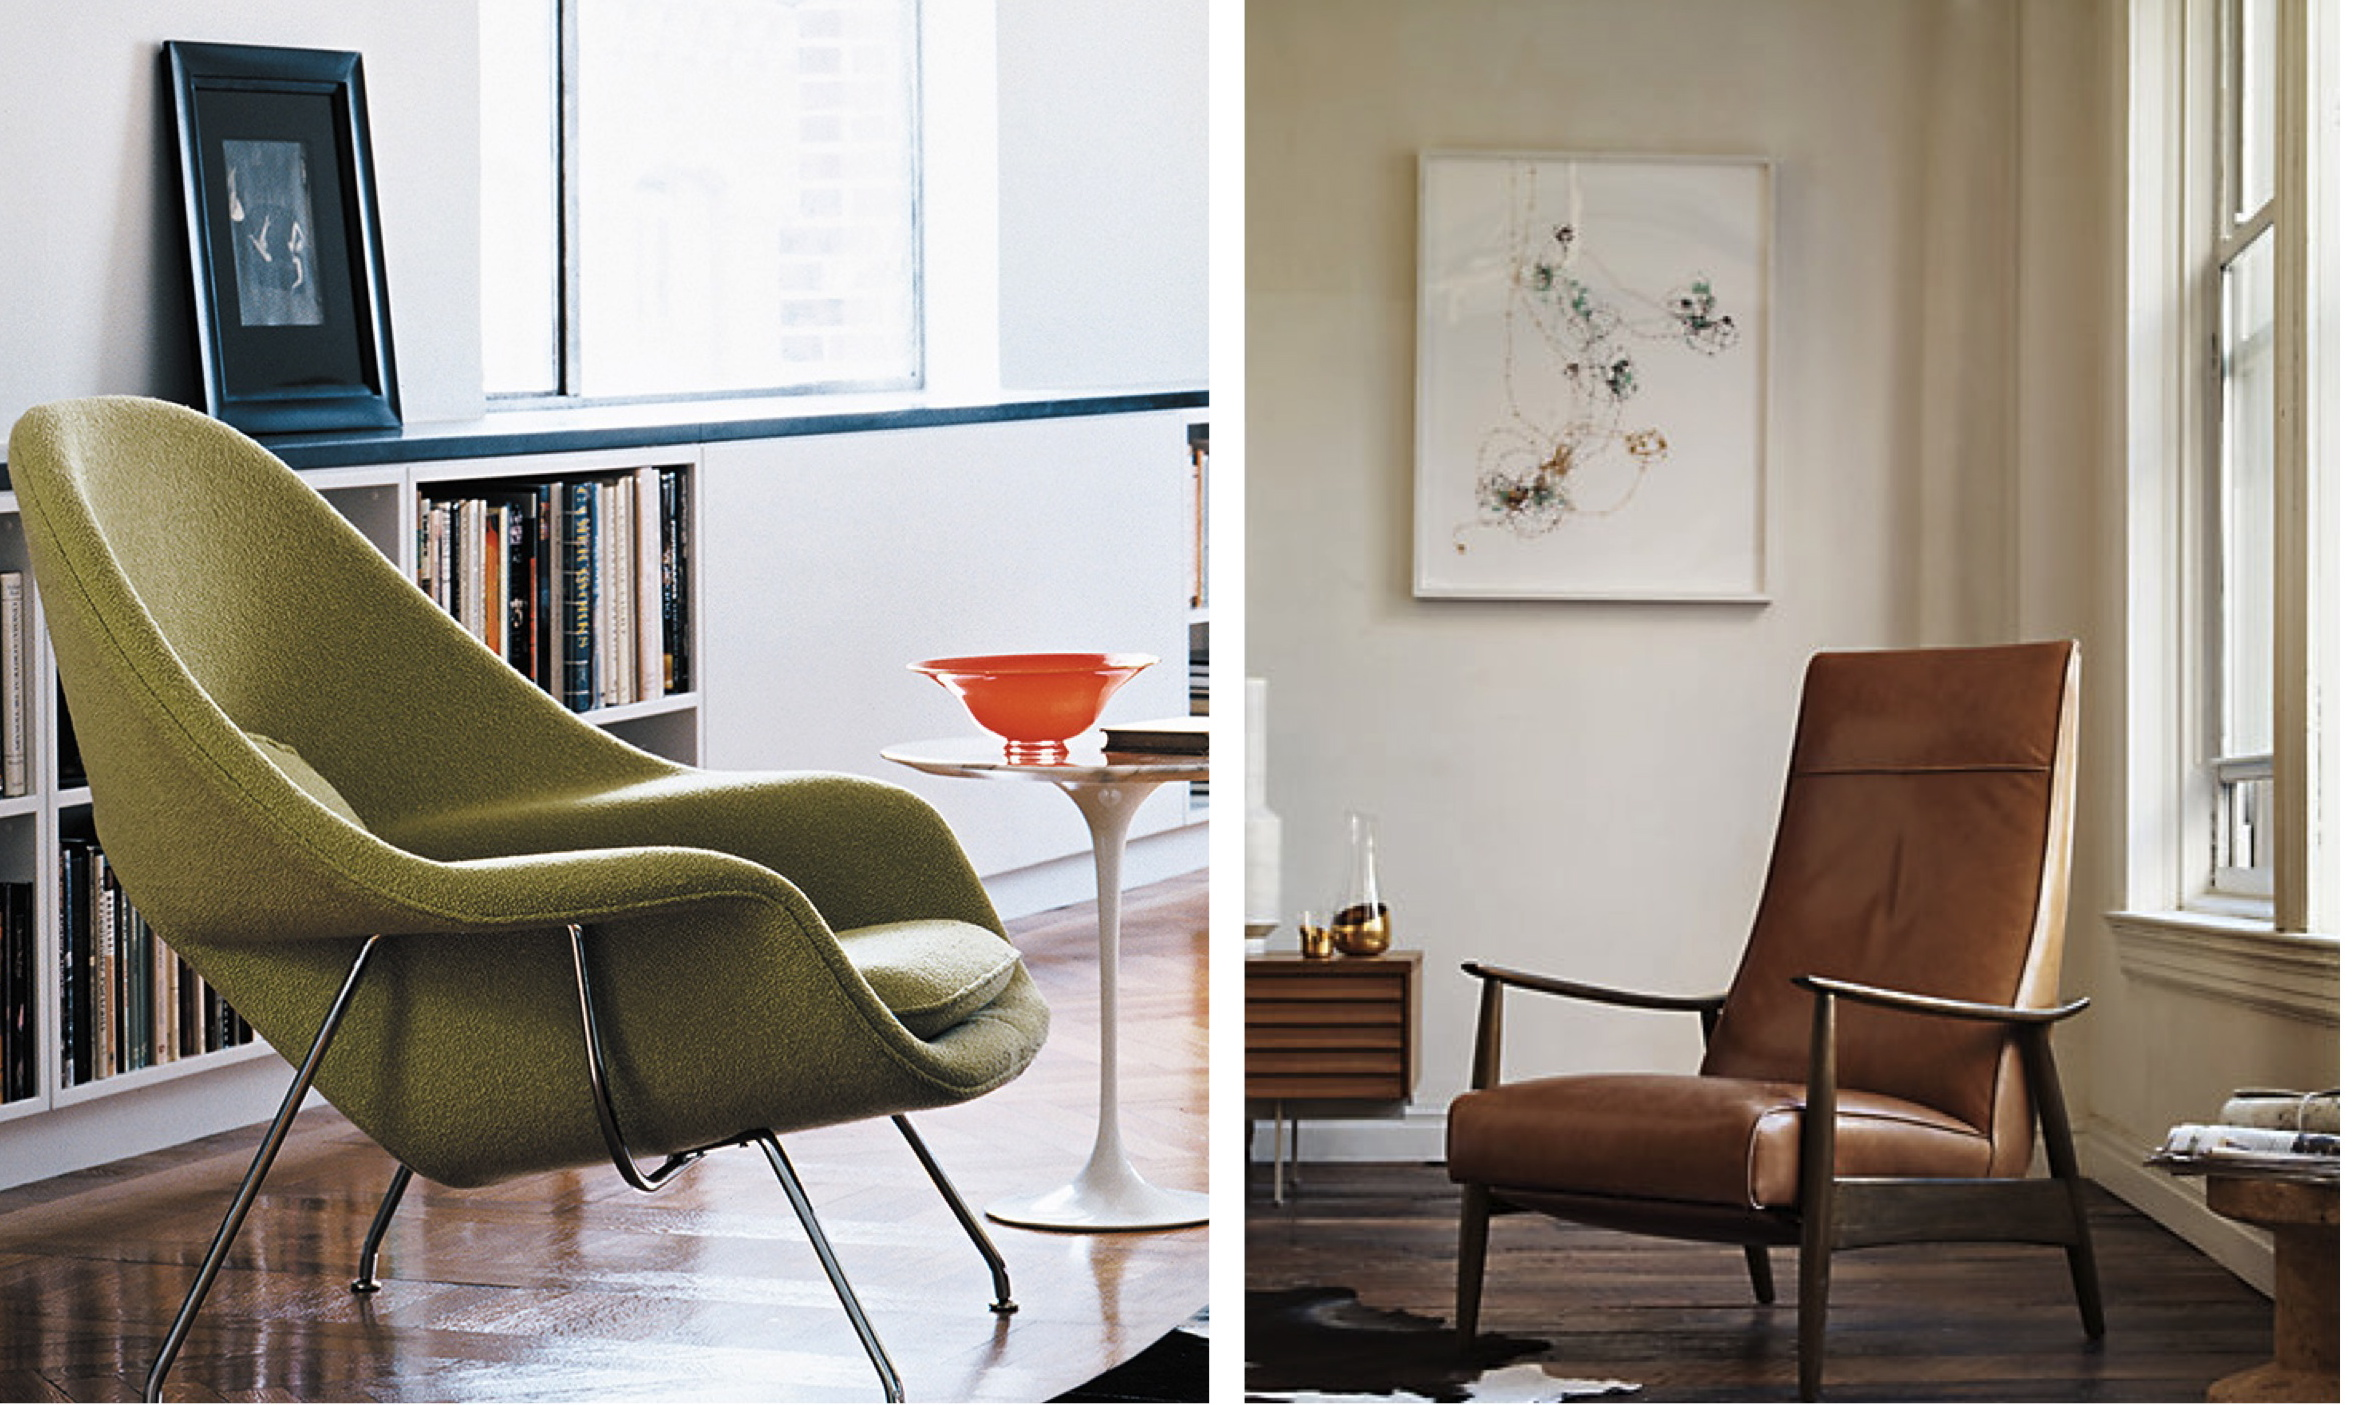 The Saarinen Womb Chair (left) and the Milo Baughman Recliner (right)